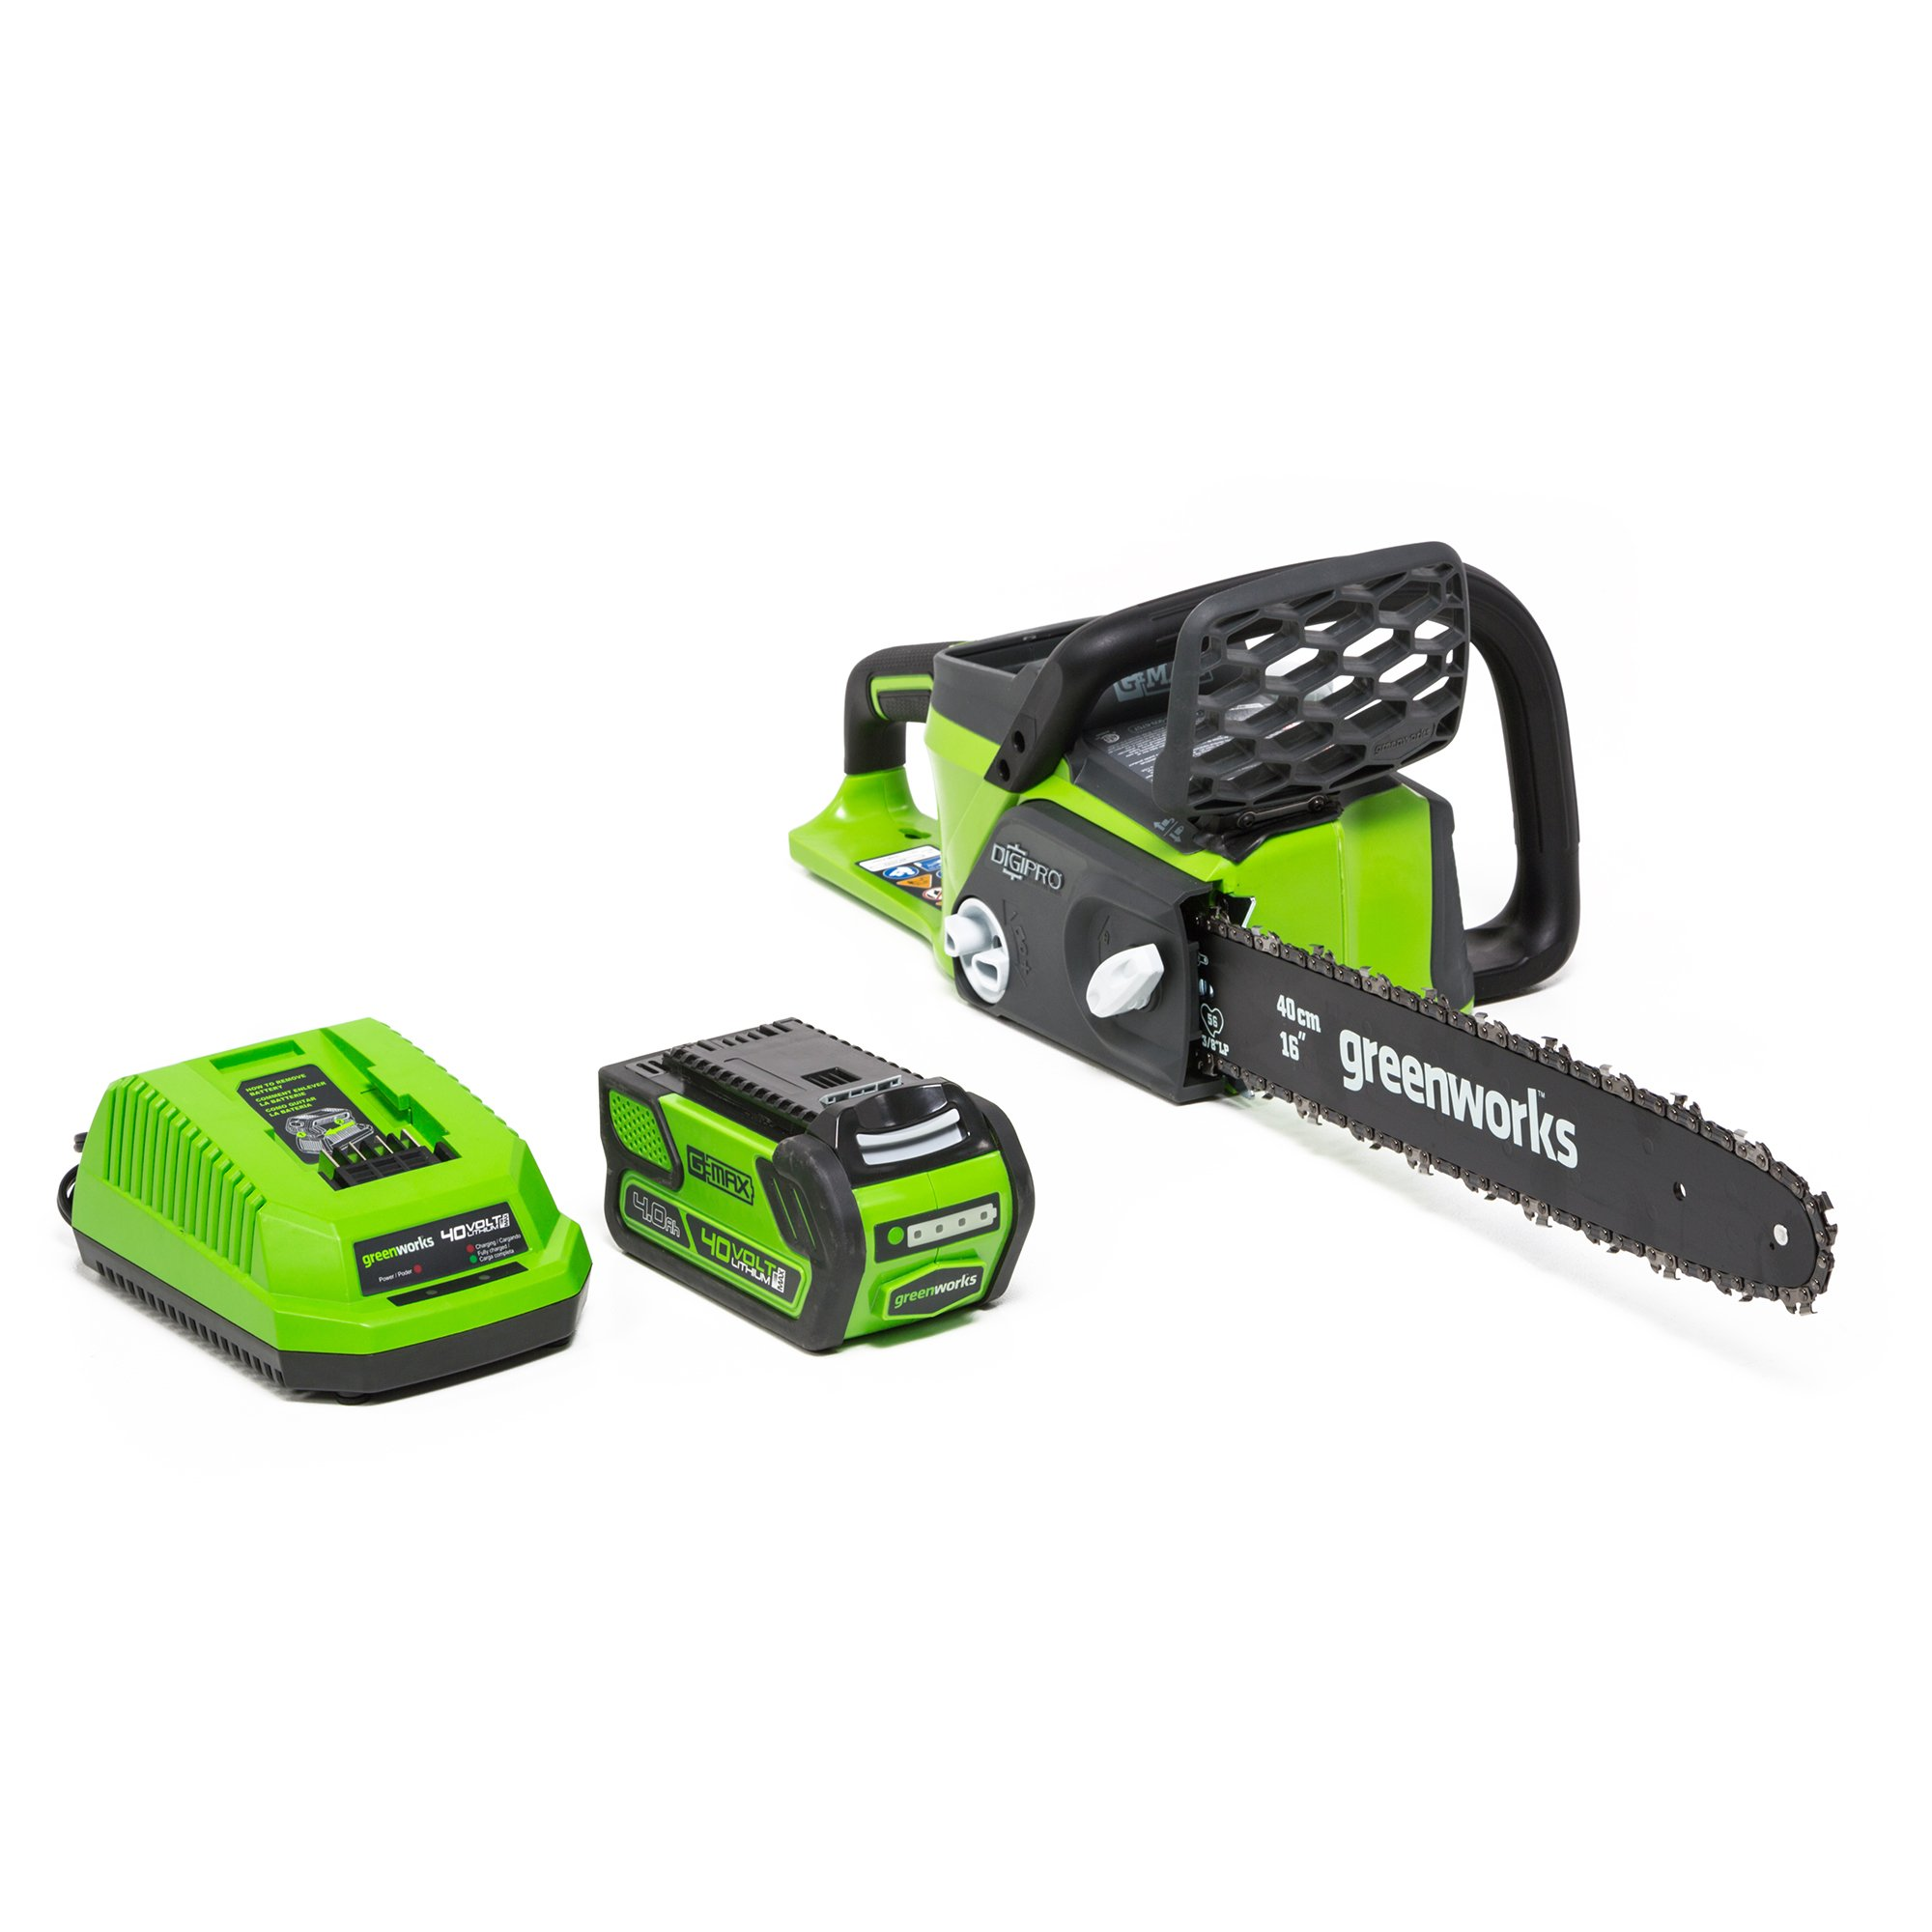 Battery Not Included 20292 Greenworks 12-Inch 40V Cordless Chainsaw